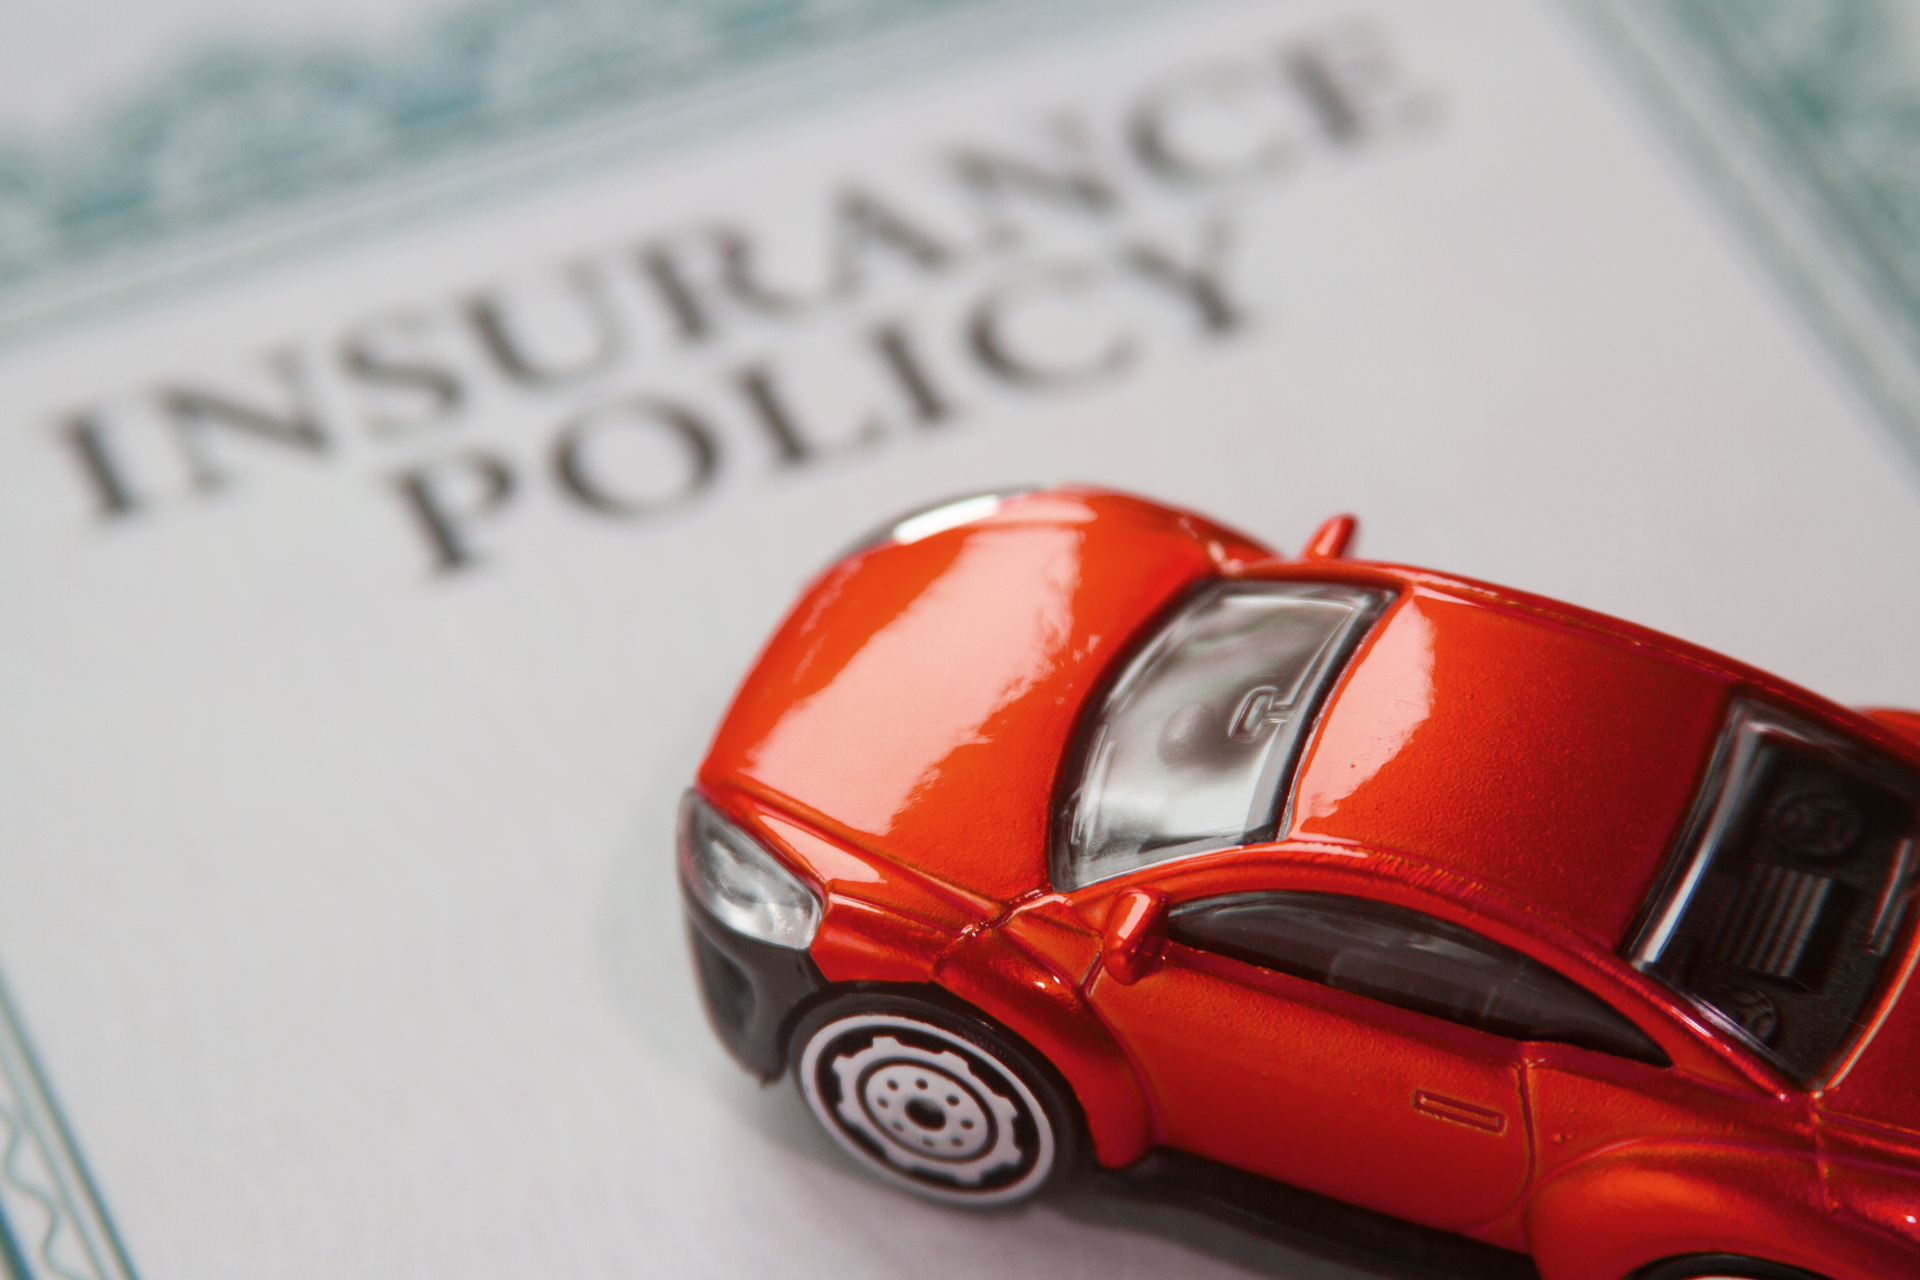 Red car on insurance policy free image download